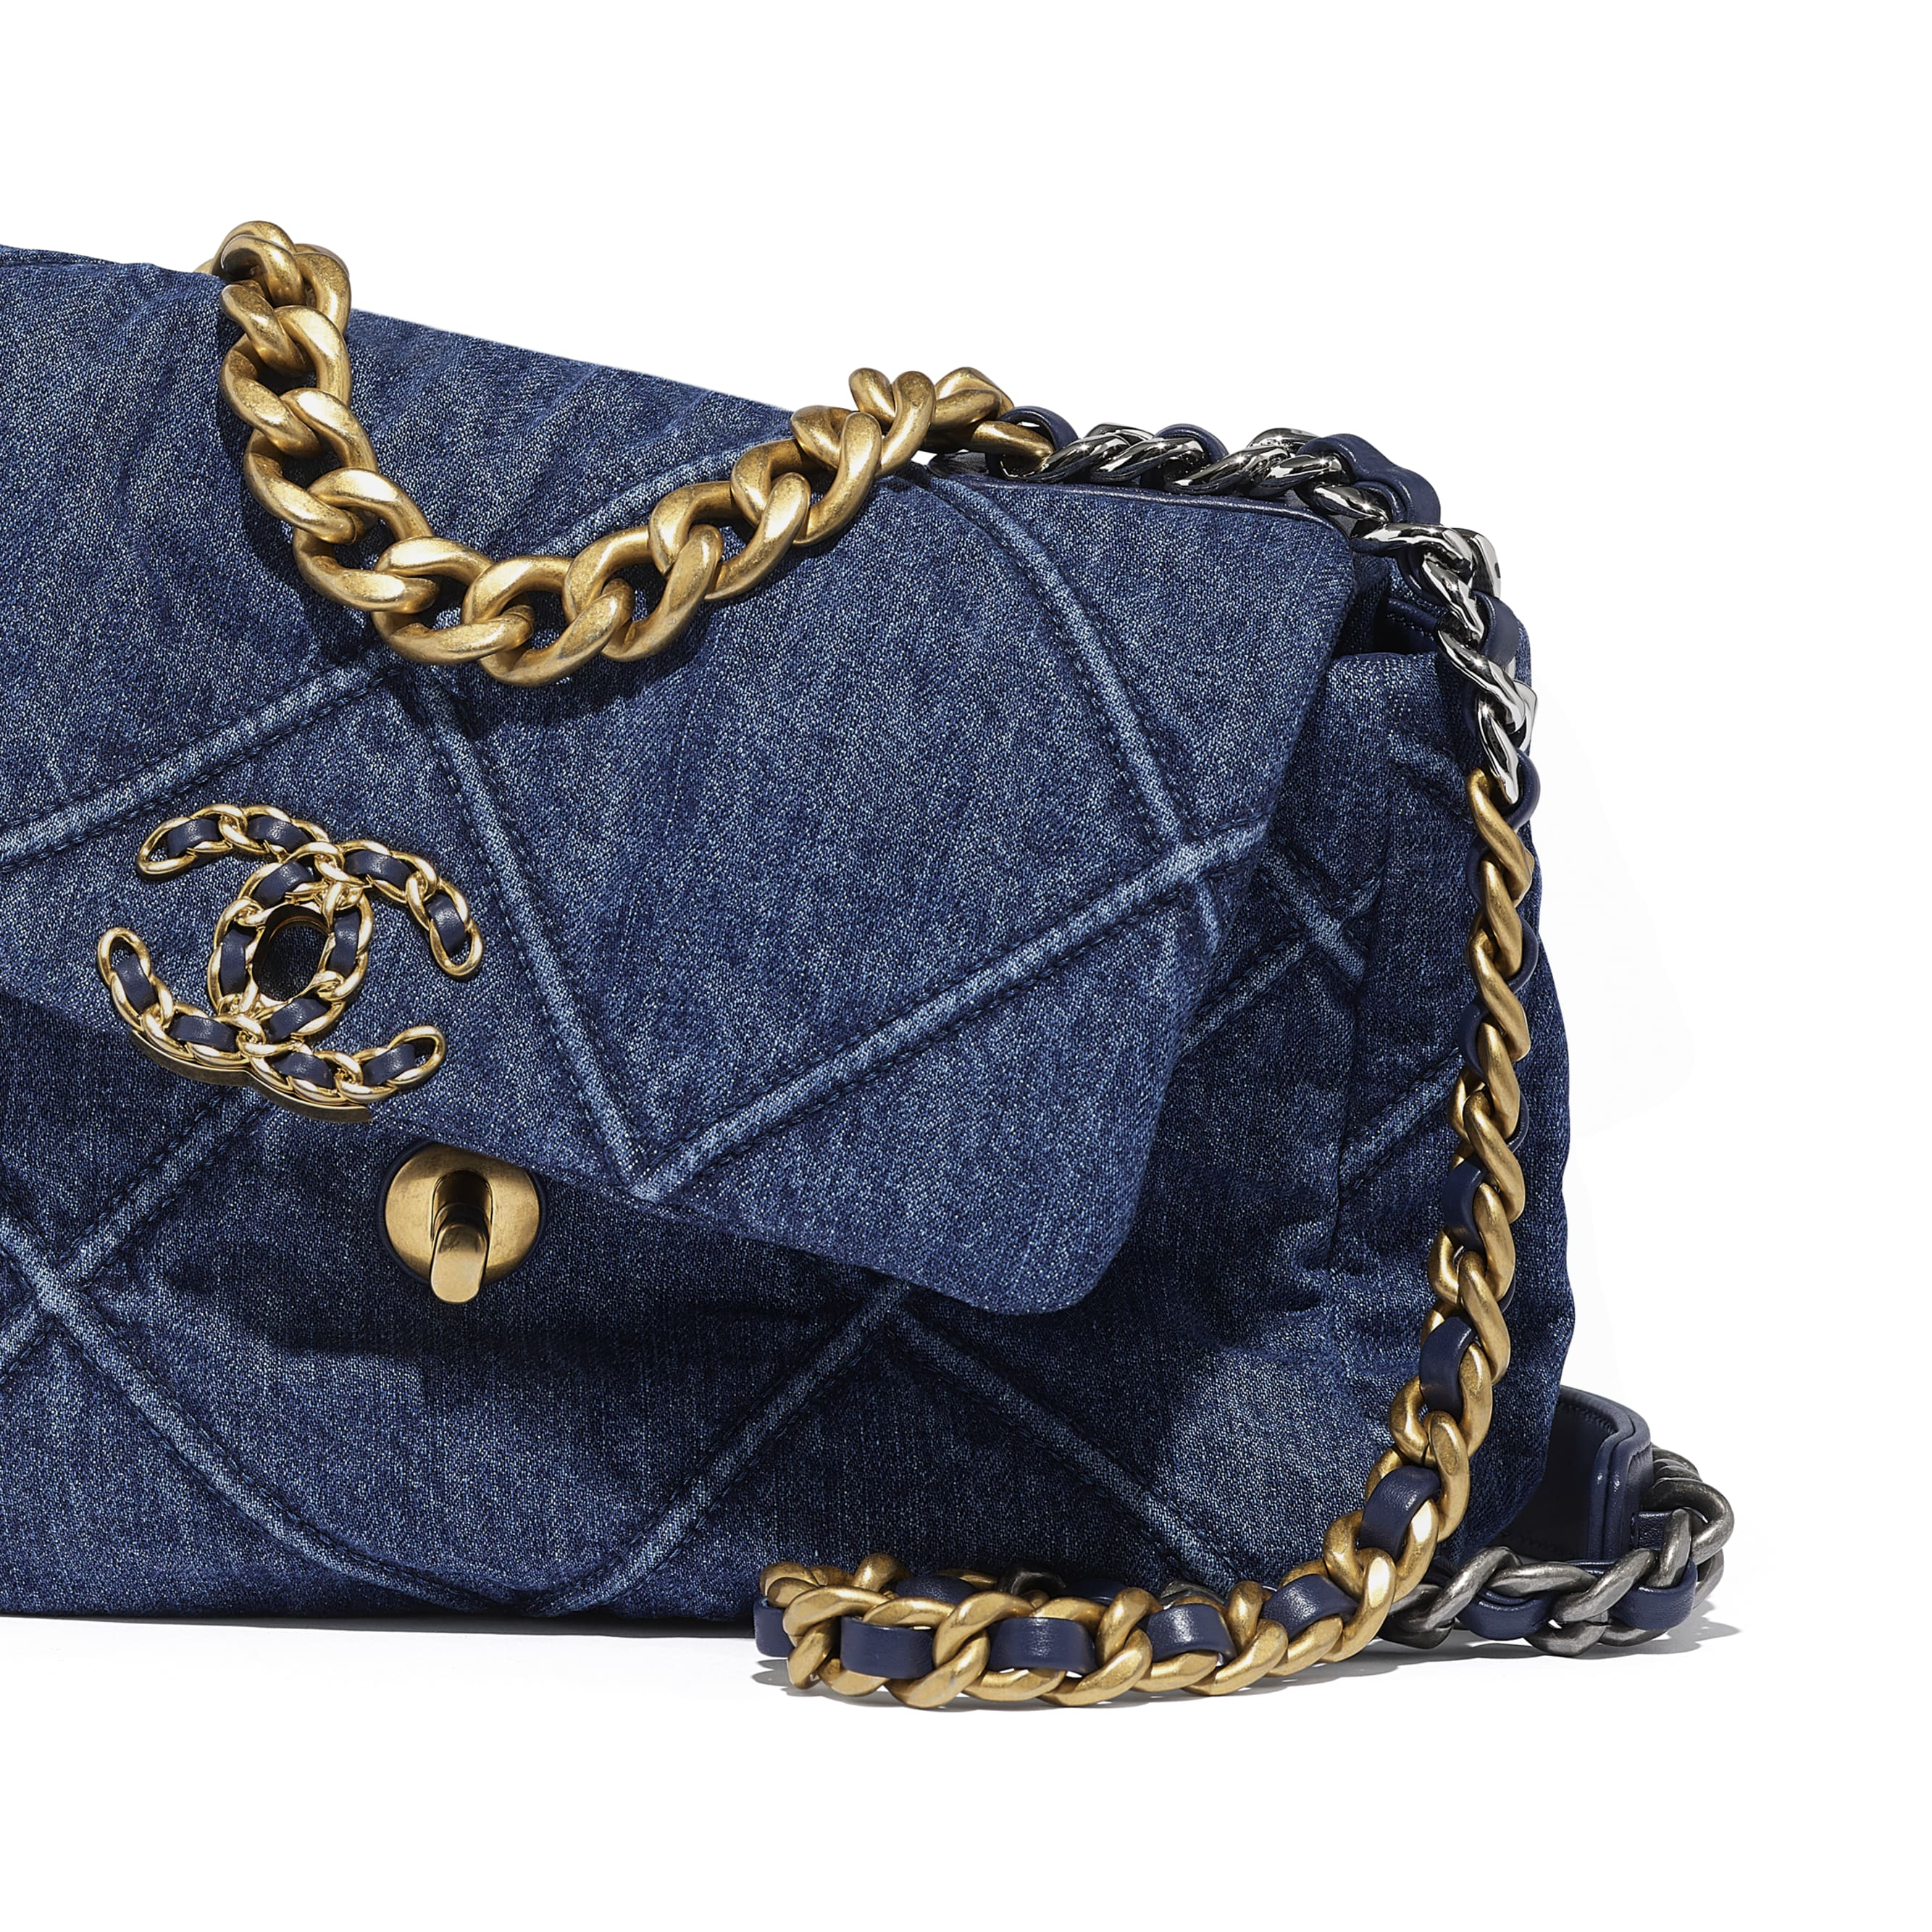 CHANEL 19 Flap Bag - Blue - Denim, Gold-Tone, Silver-Tone & Ruthenium-Finish Metal - Extra view - see standard sized version